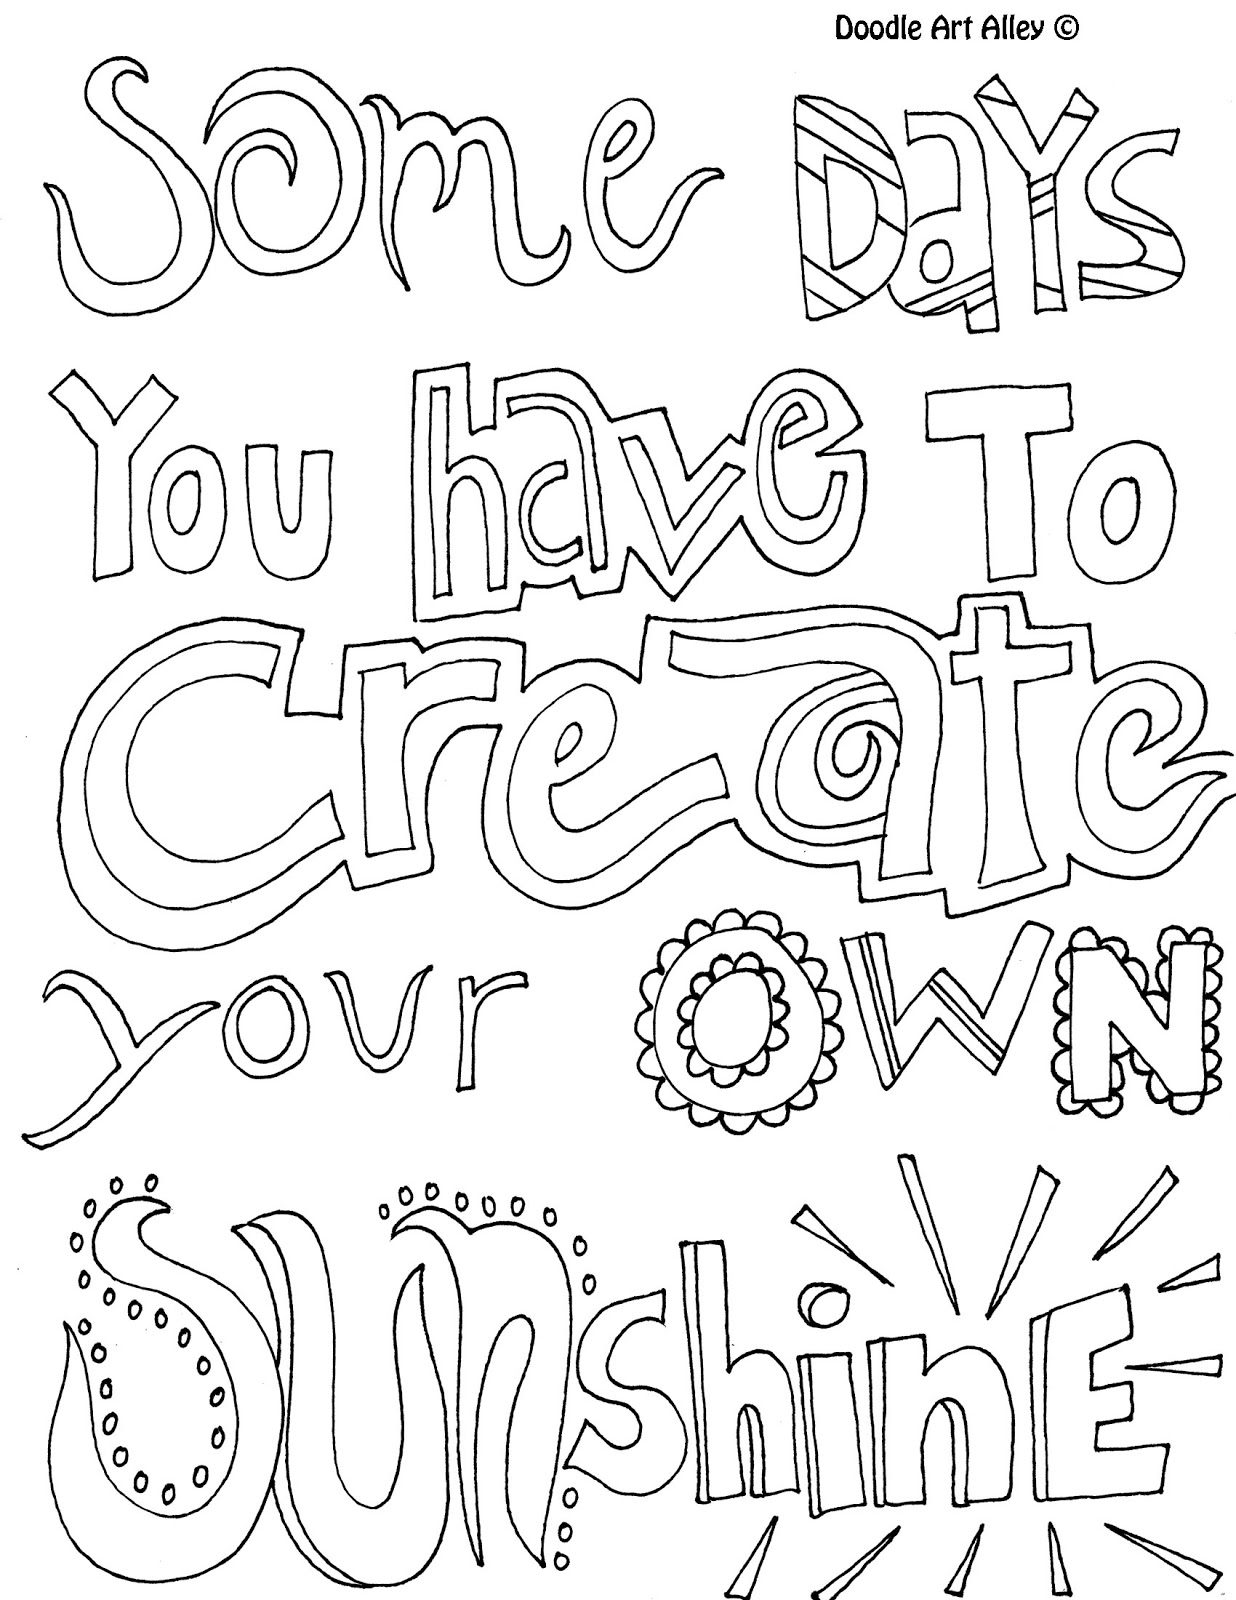 1236x1600 Make Your Own Coloring Pages Online Aecost Net And Menmadeho Me